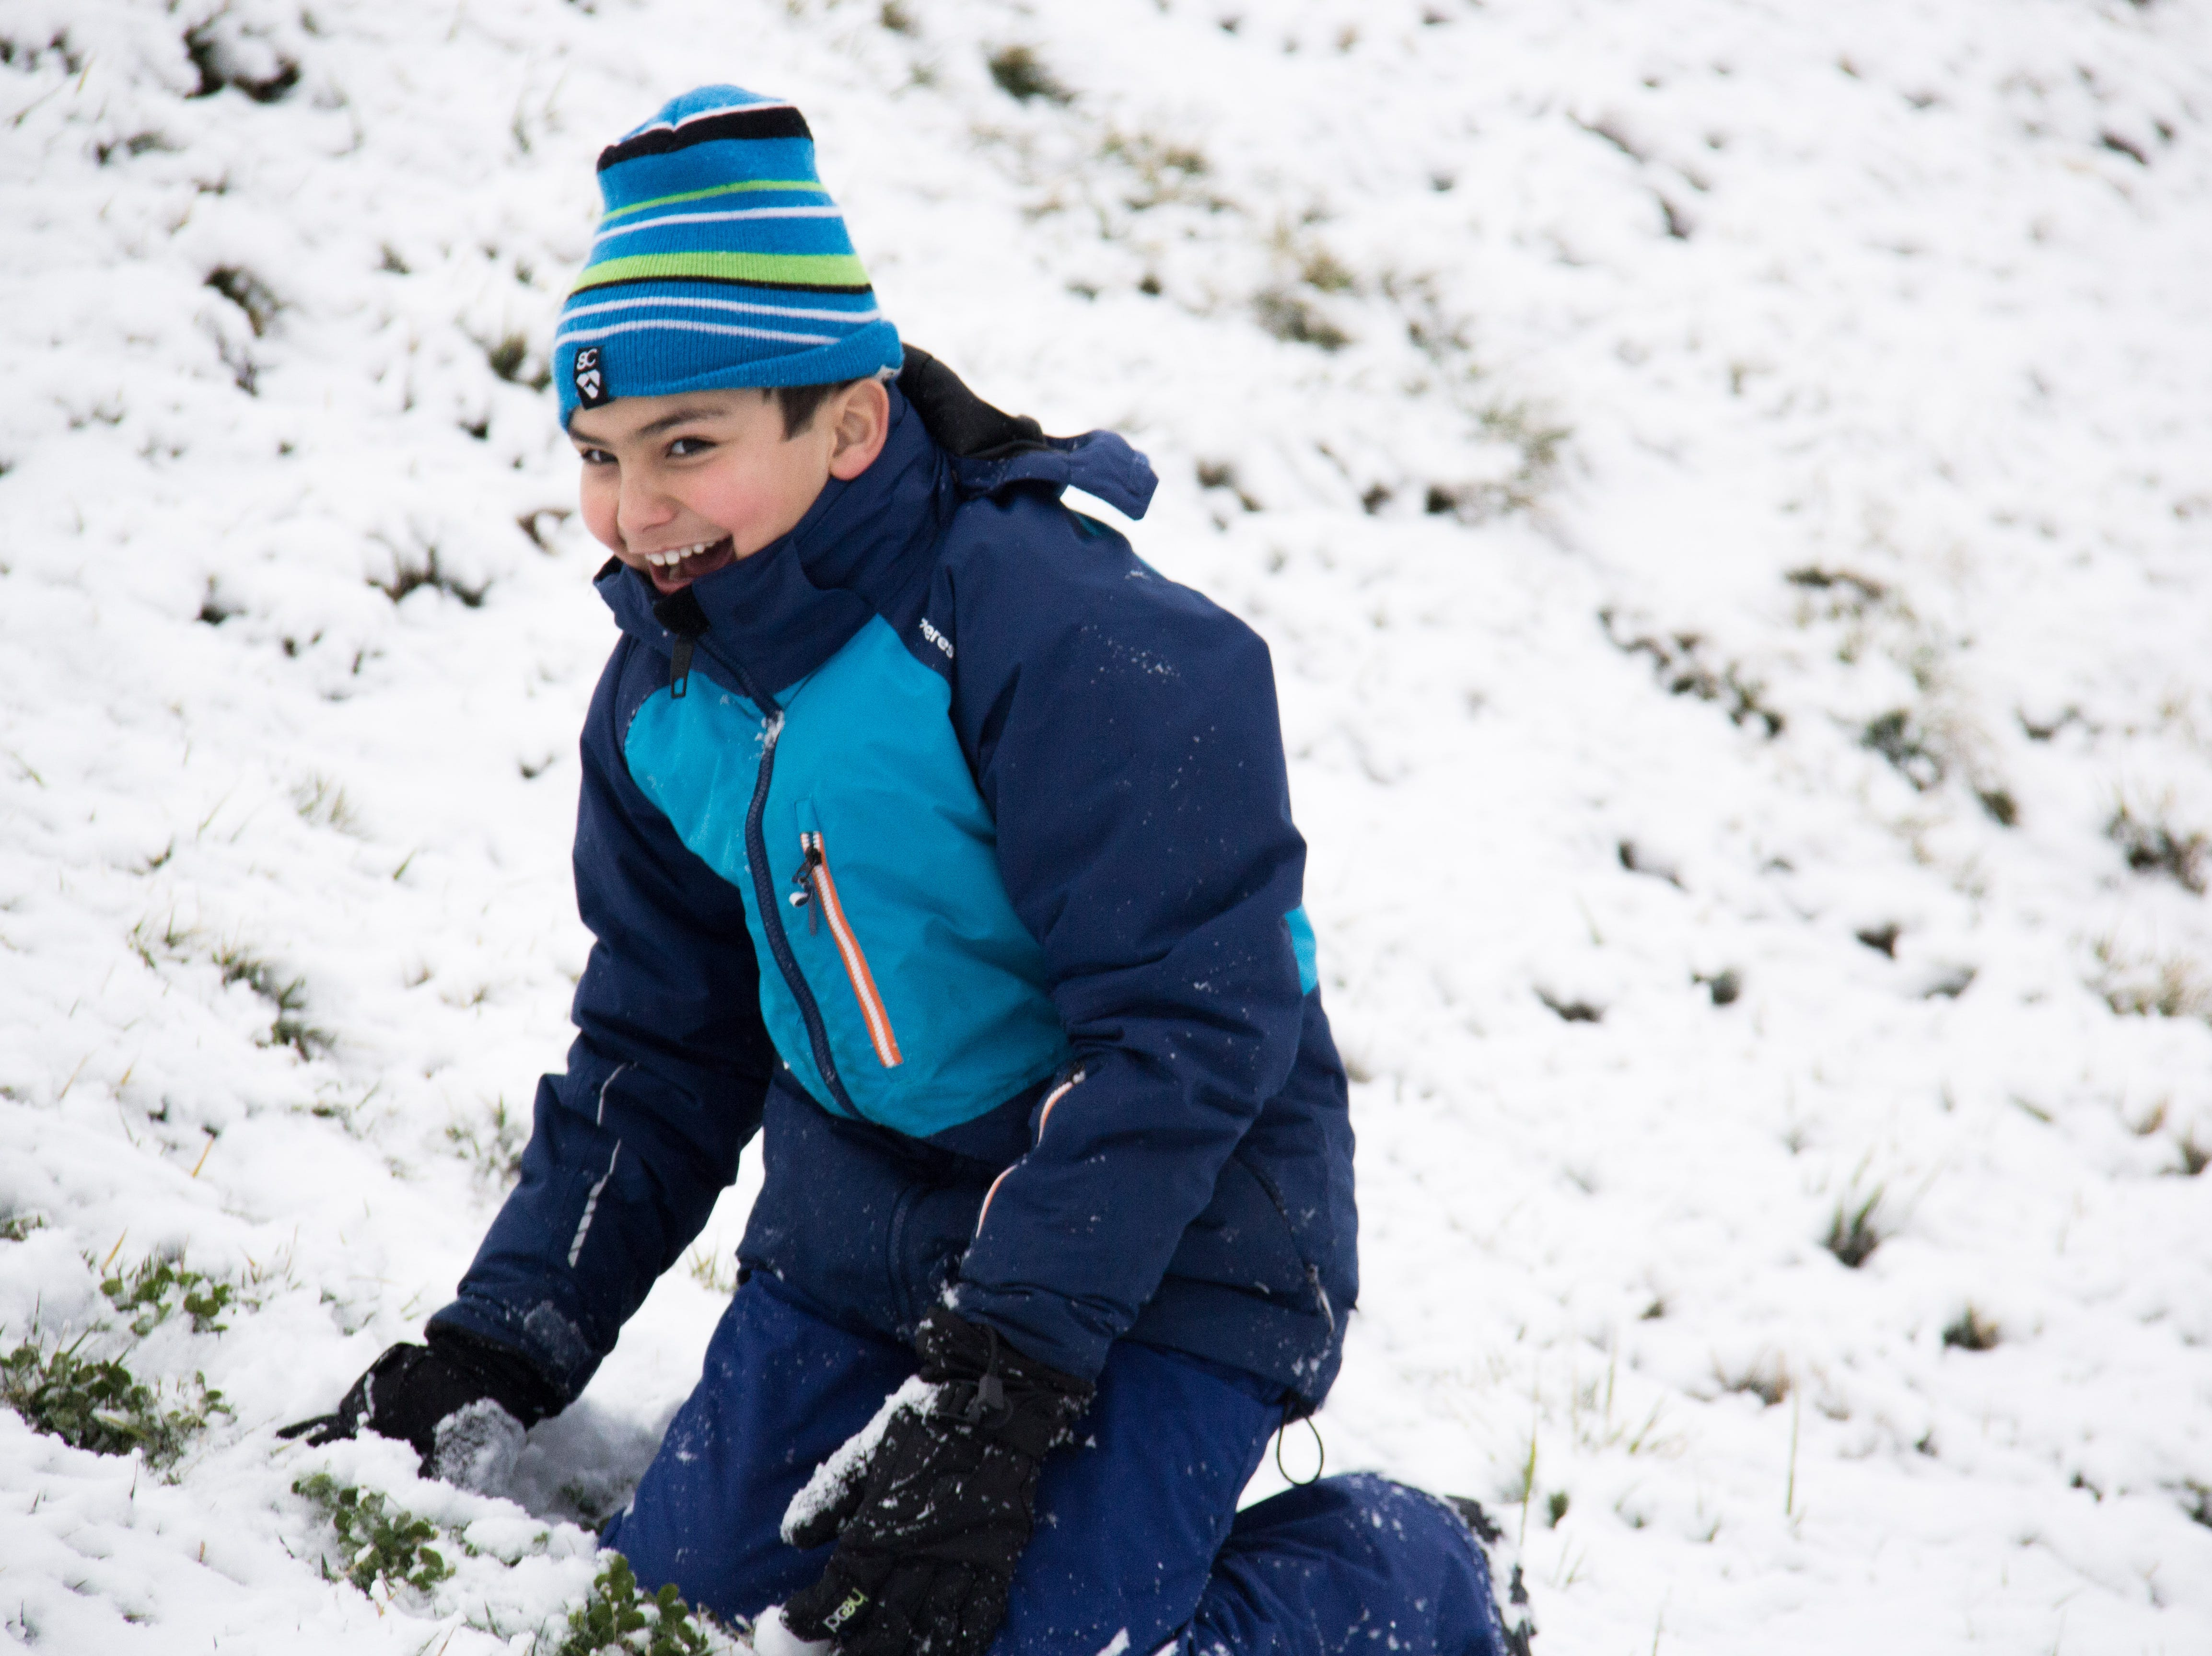 Nine-year-old Ian plays in the snow at Lakeshore Park in Knoxville on Jan. 29, 2019.